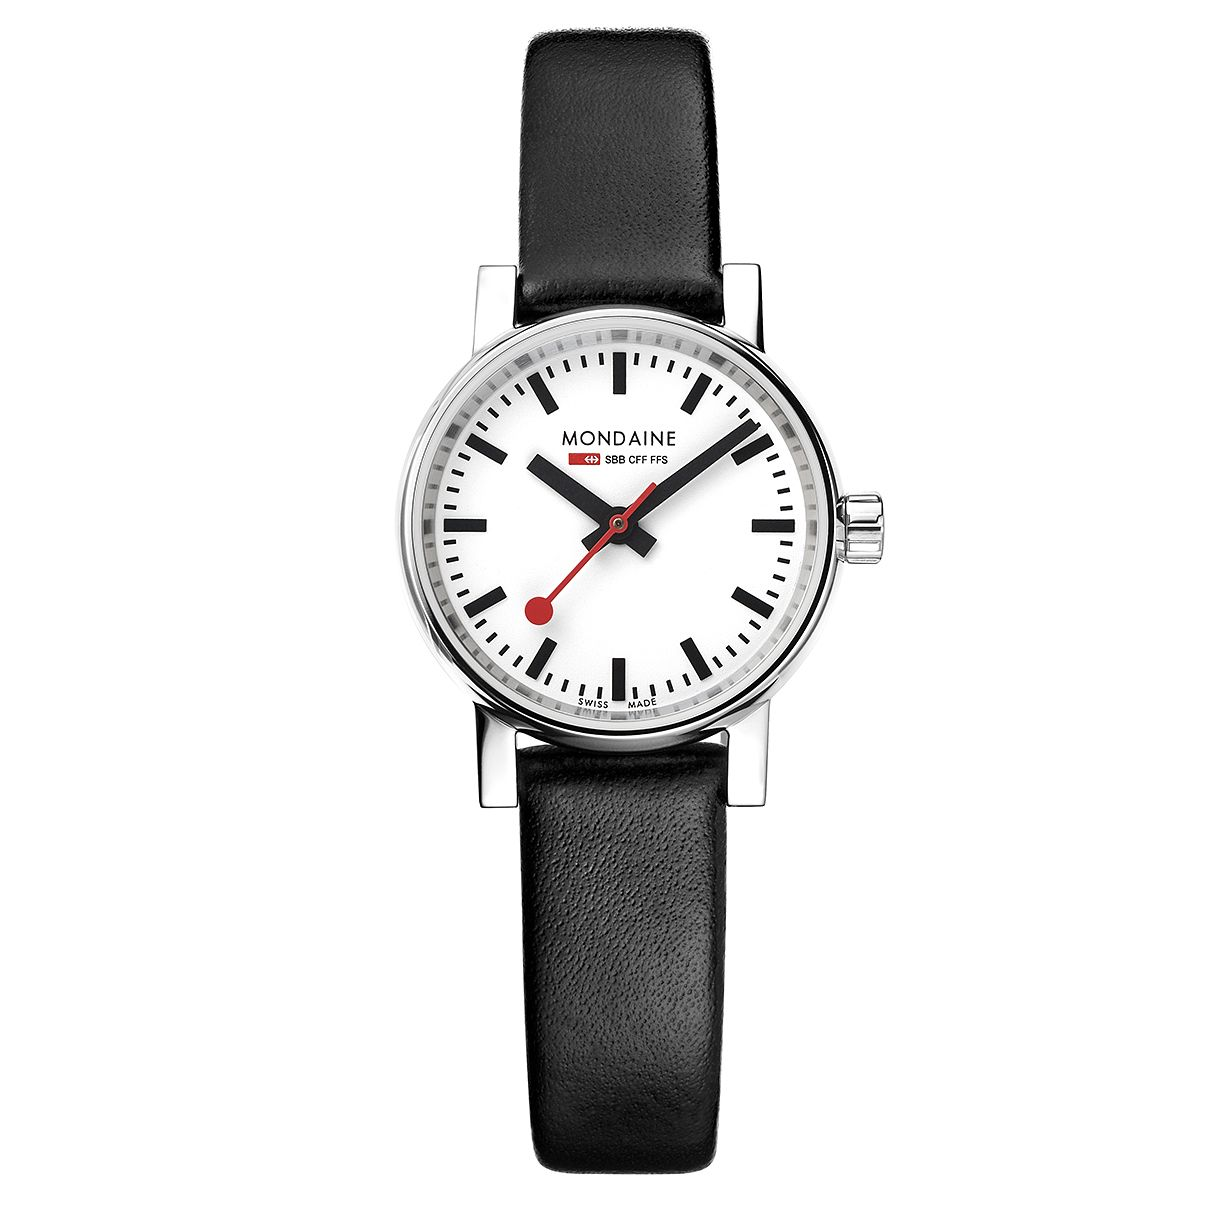 Mondaine SBB evo2 Petite Ladies' Black Leather Strap Watch - Product number 8043825